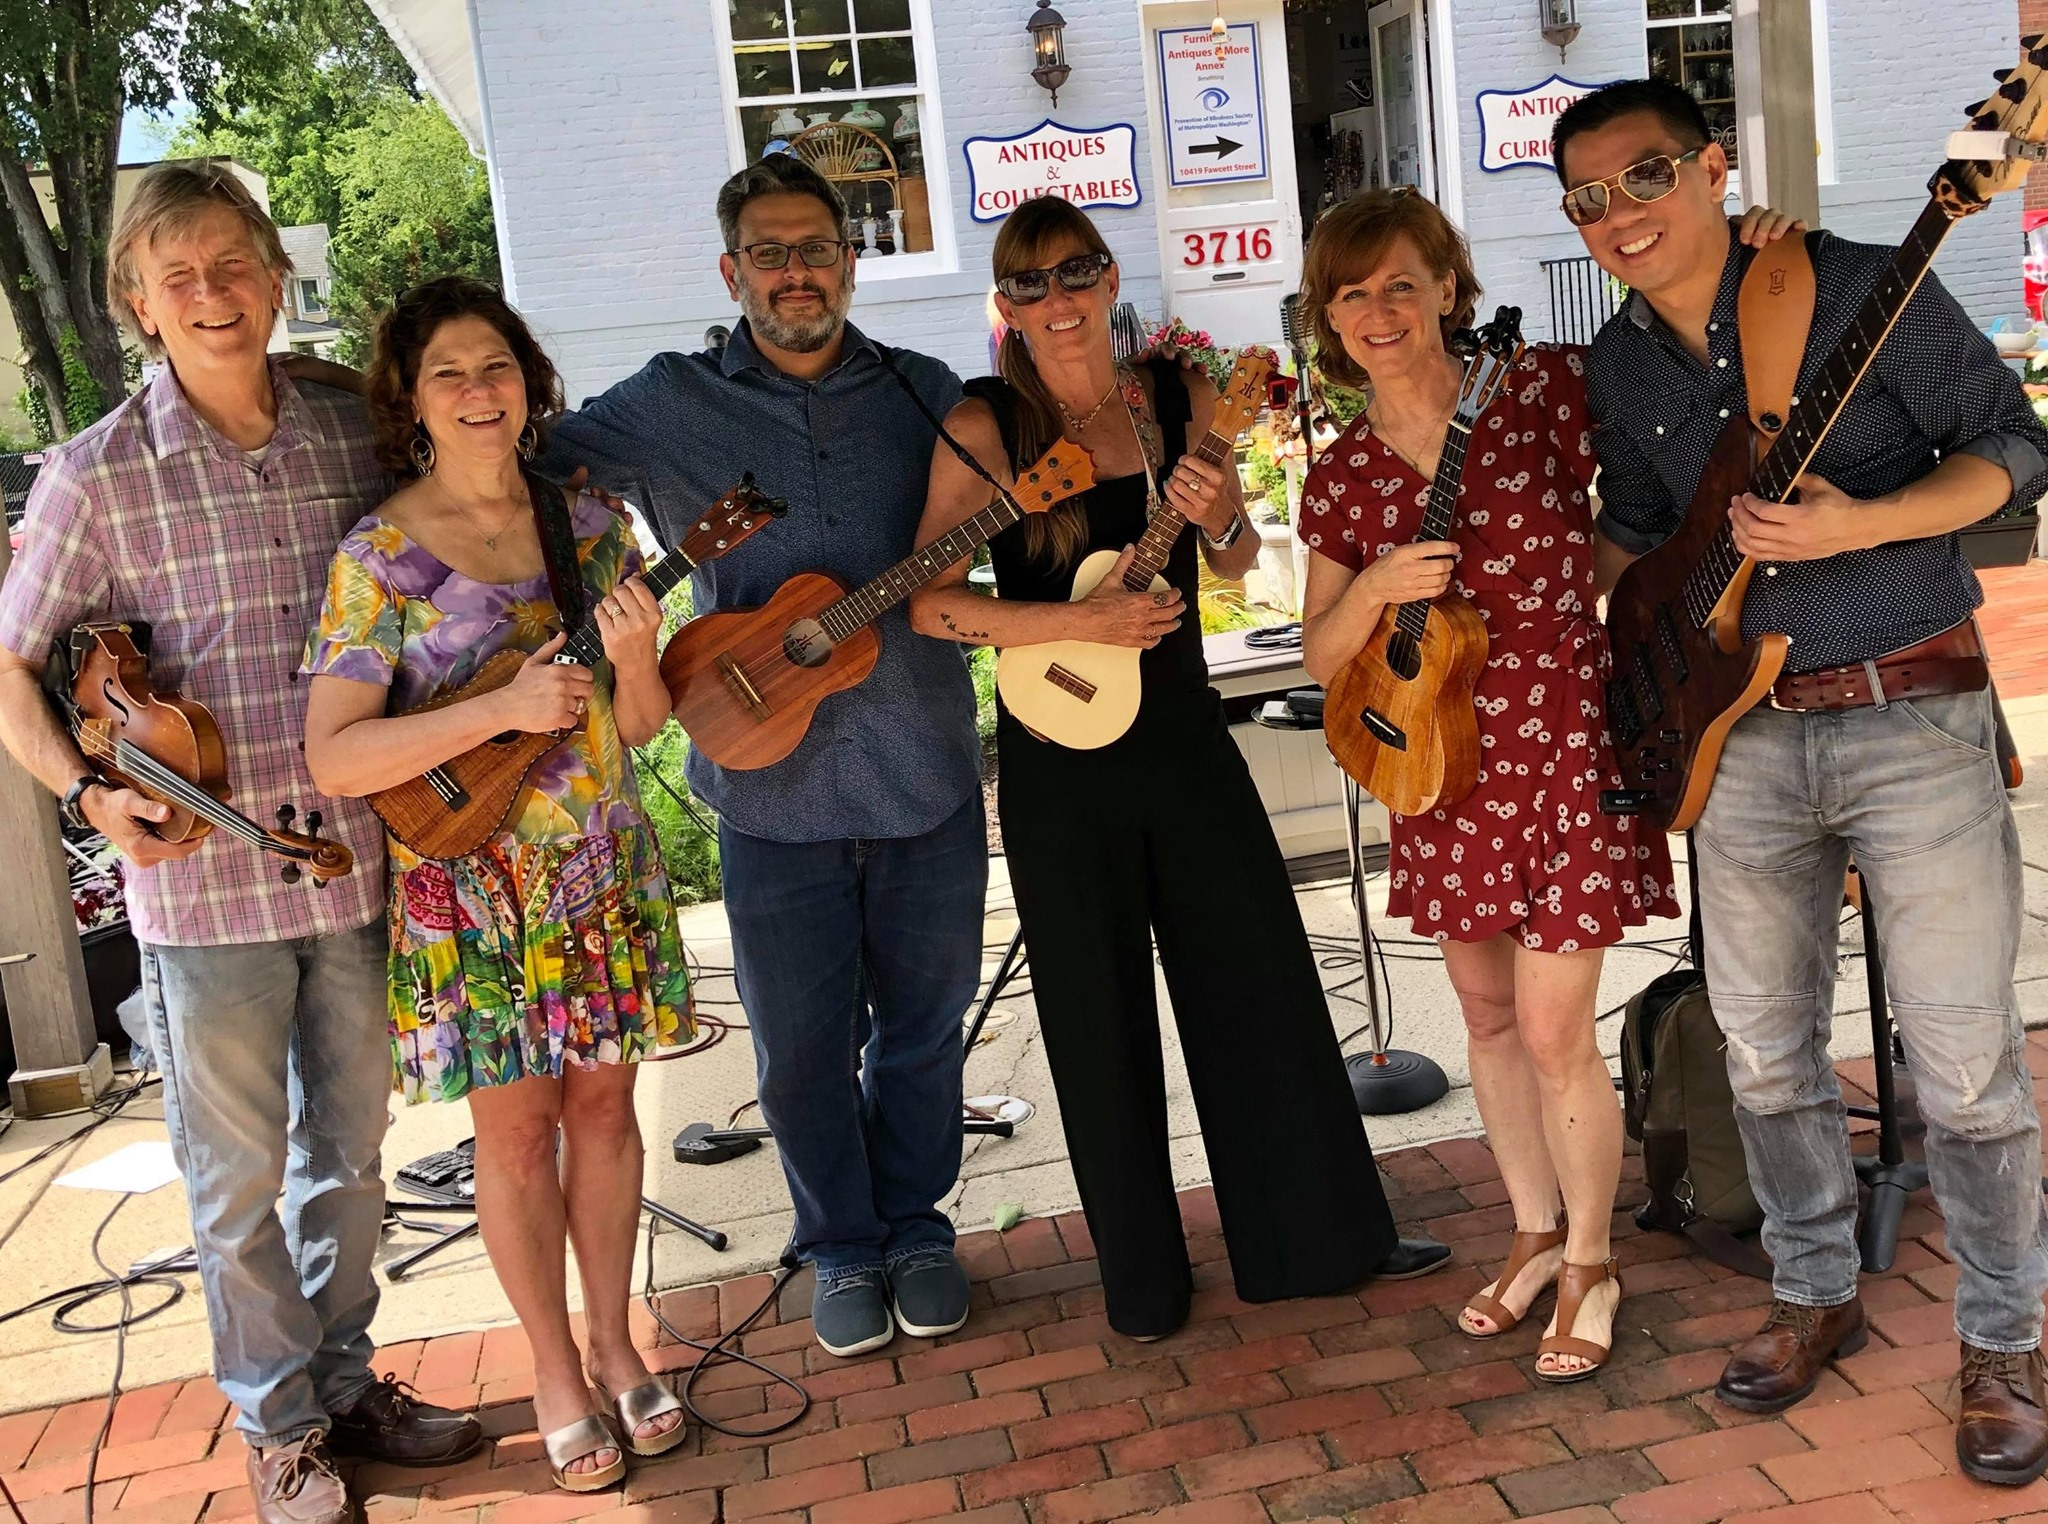 2019-06-15 - Sisters Uke and Friends @ Kensington Farm Market.jpg